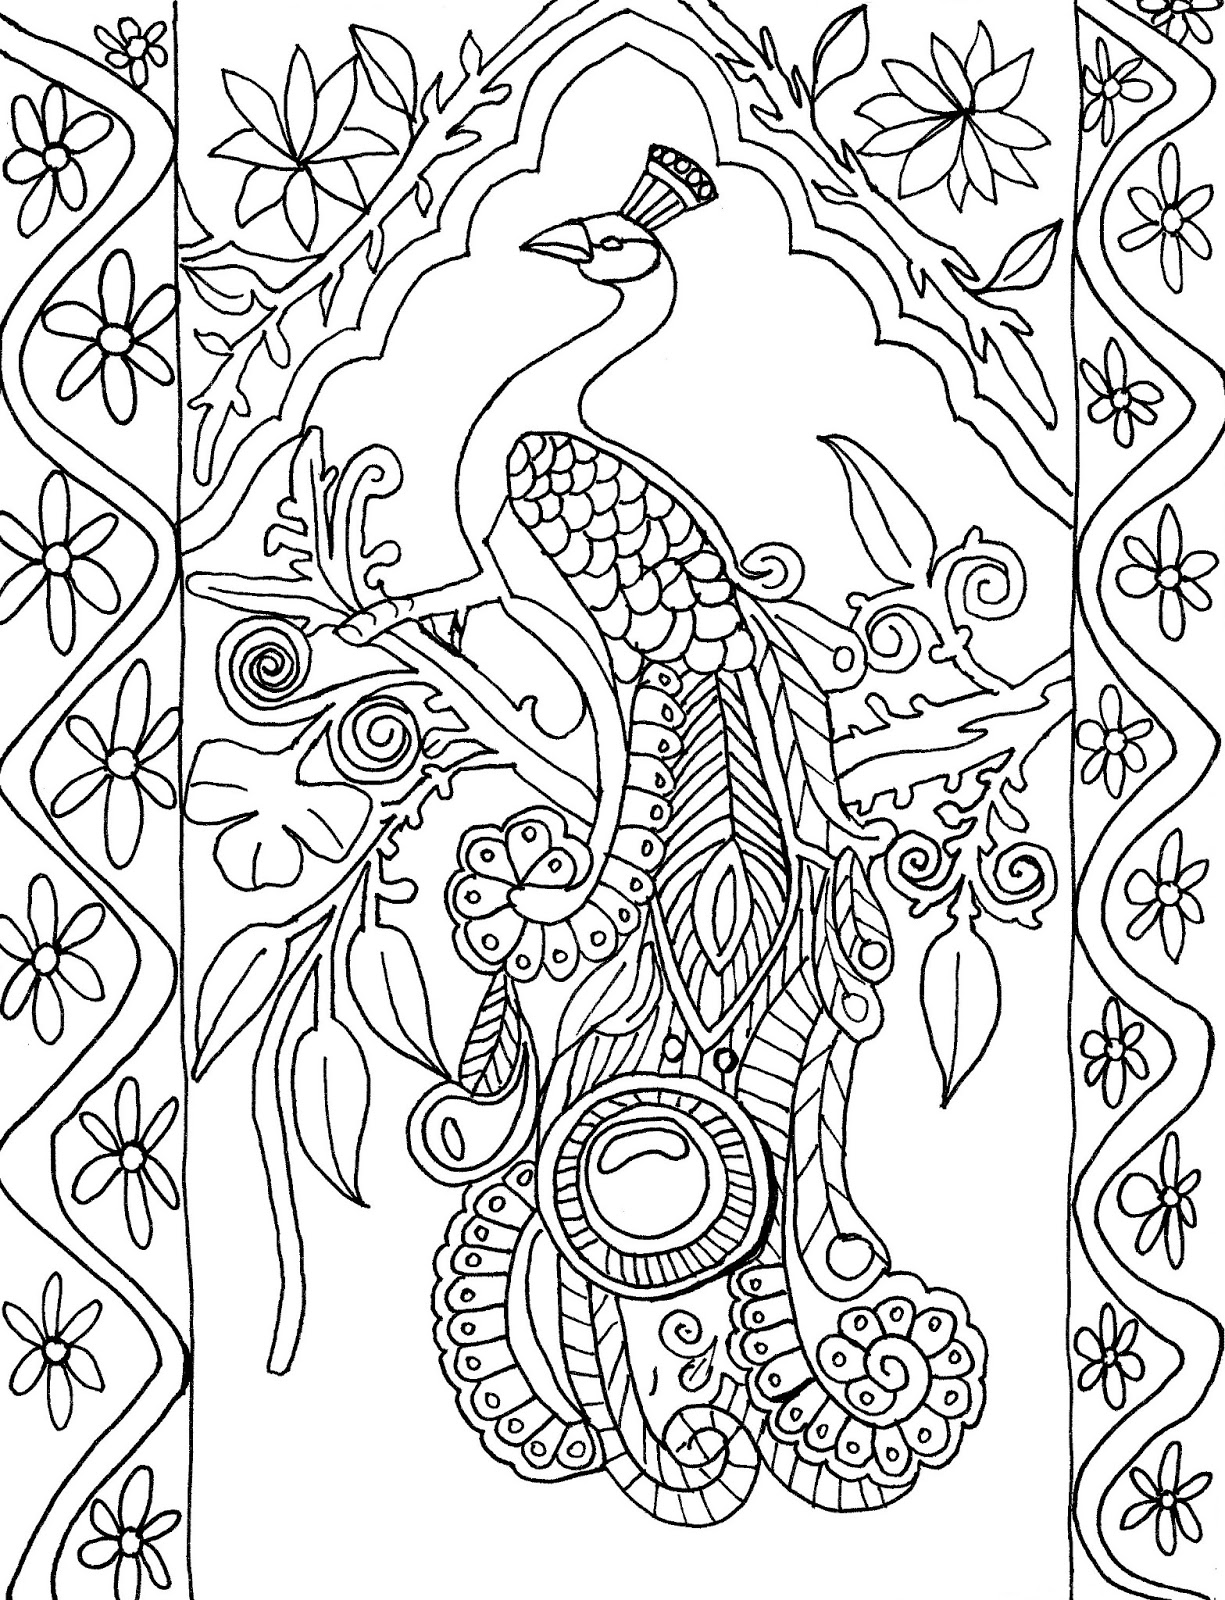 easy cute peacock coloring pages peacocks coloring pages download and print for free peacock easy pages cute coloring